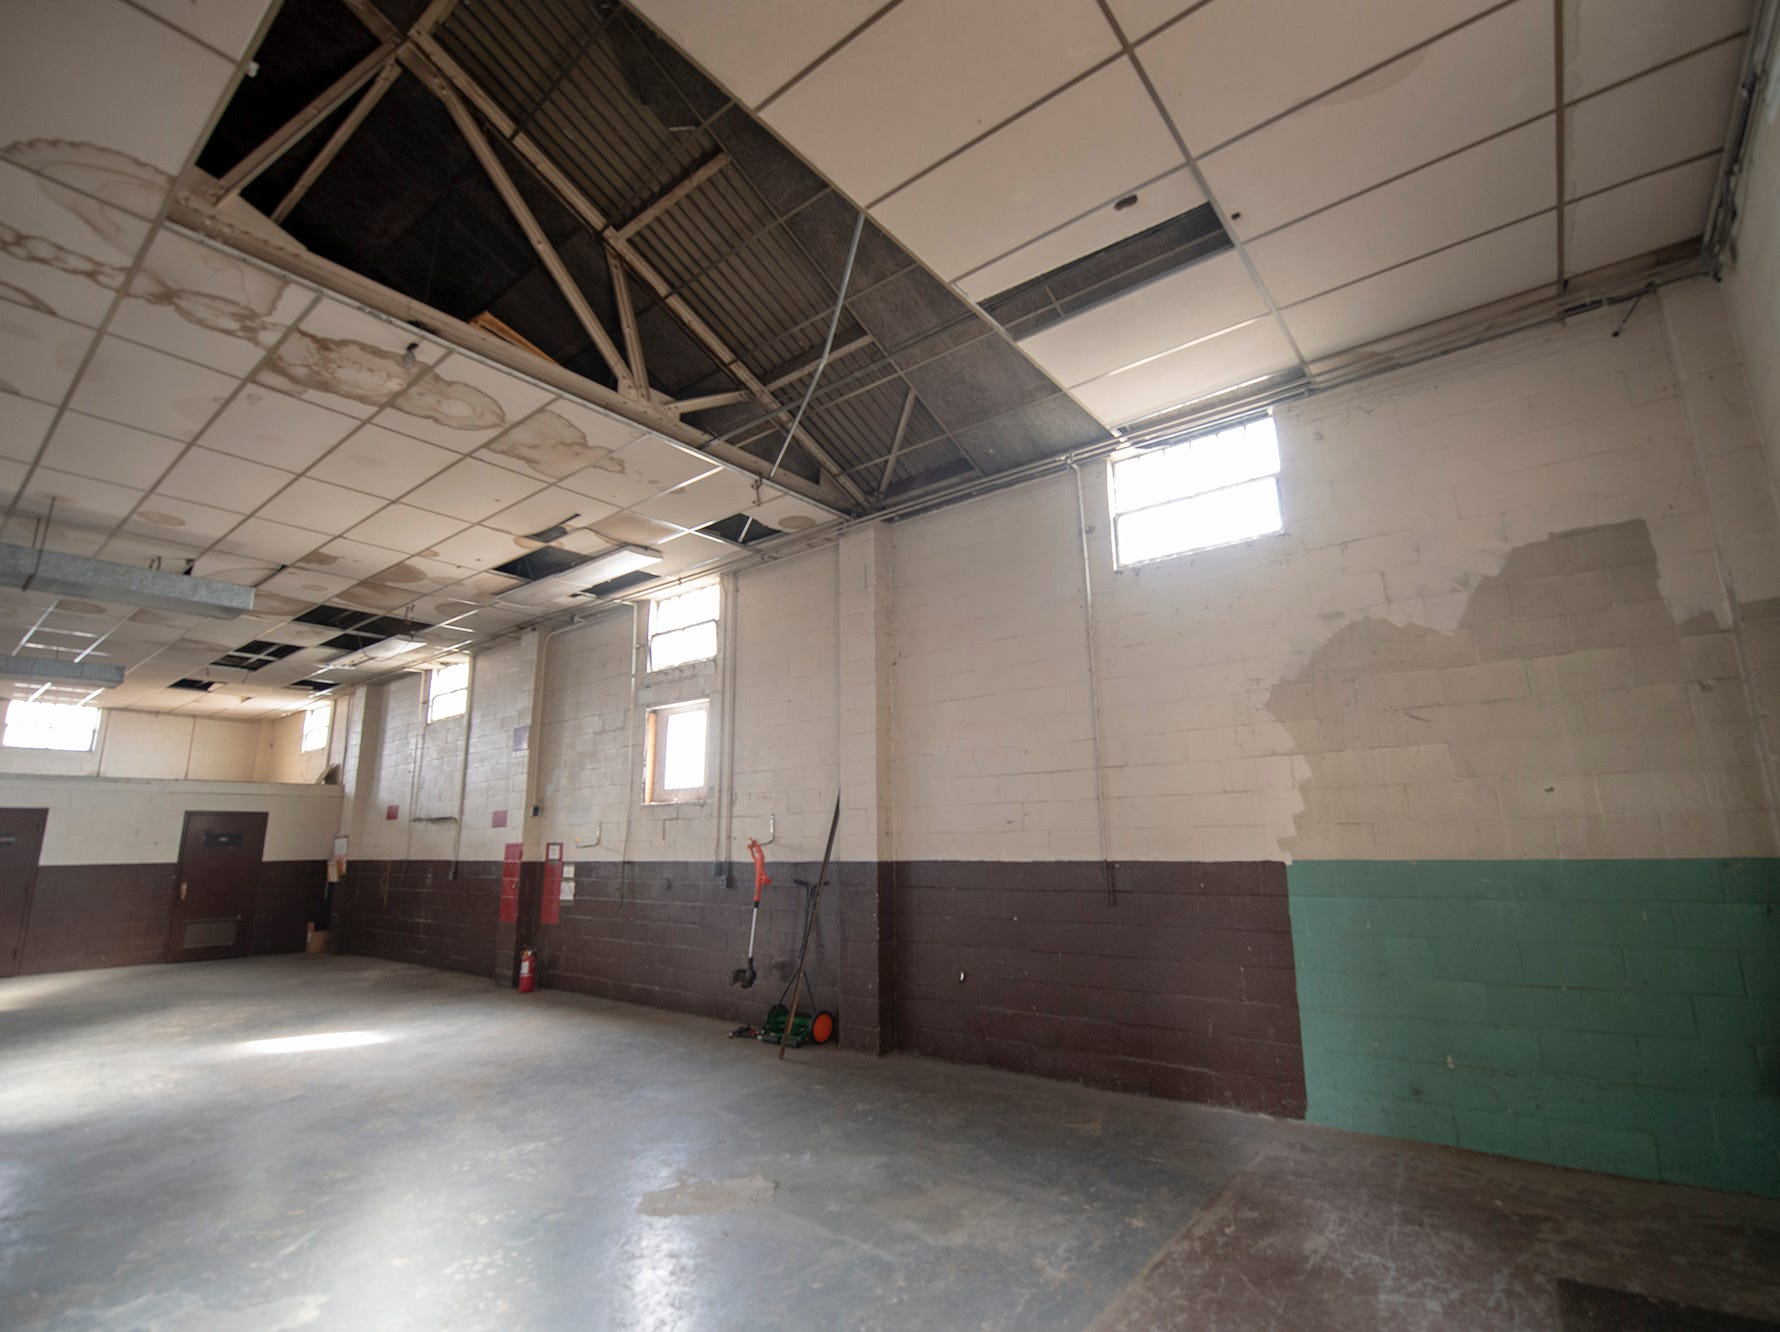 The future Kitchen Lab space as seen in the artist's rendition. The York Armory, a brick fortress built in 1913 once used by the Pa. National Guard, will soon be transformed into Keystone Kidspace, an educational experience for families. It's expected to open in 2020.